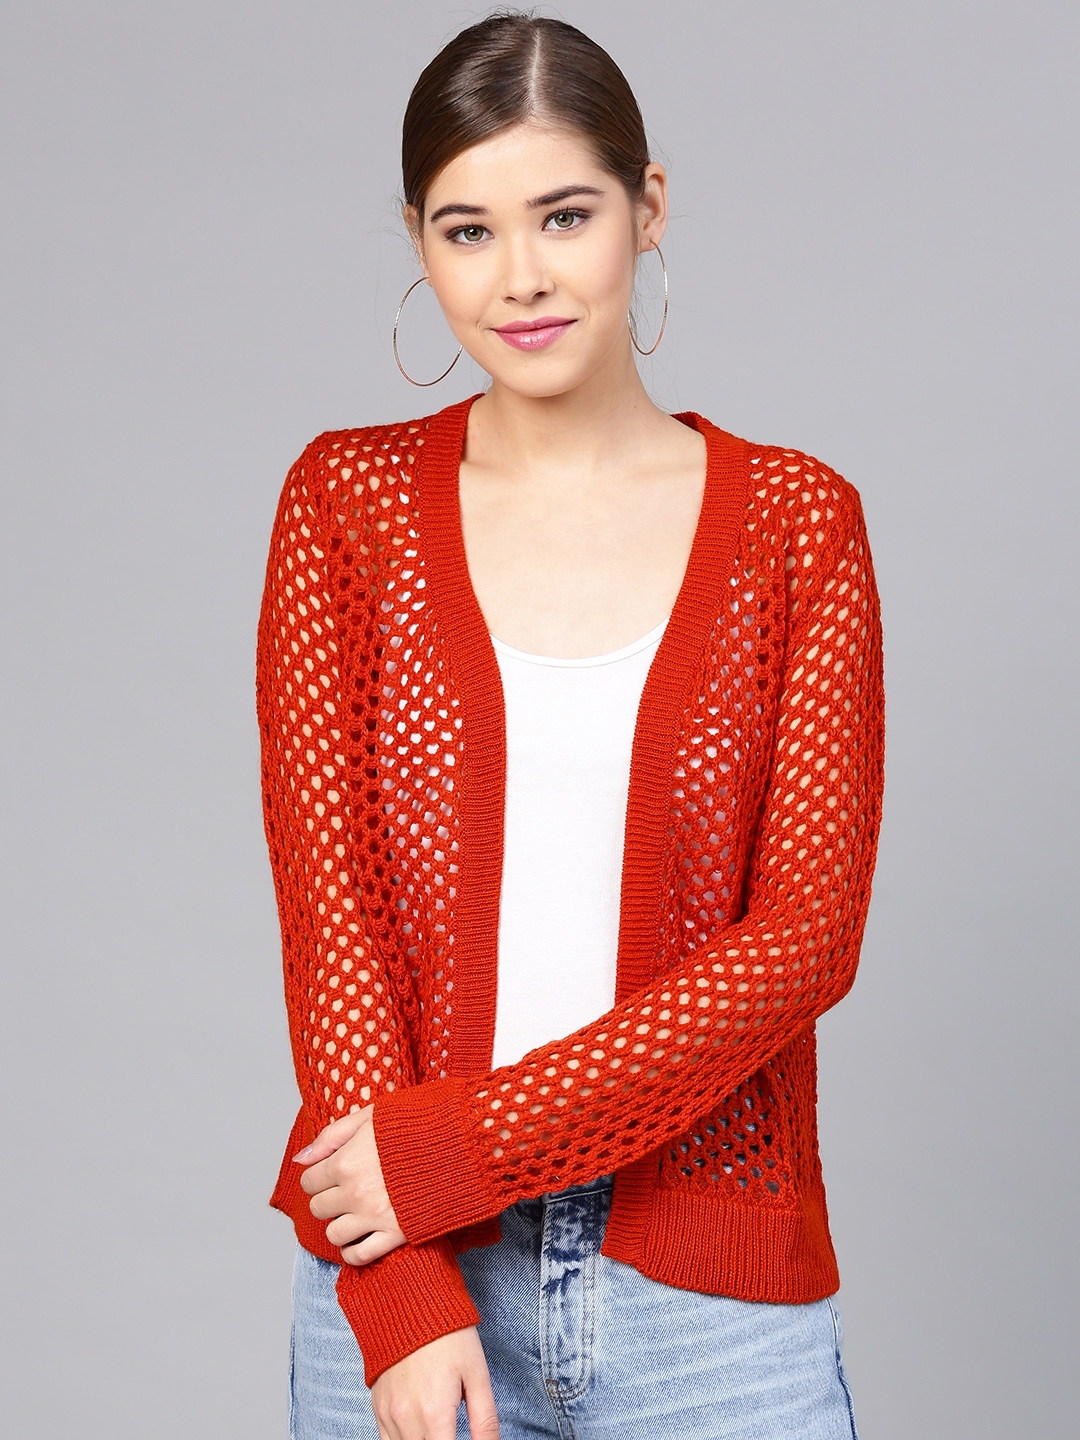 e970184e2d Buy STREET 9 Orange Solid Open Knit Open Front Shrug - Shrug for ...